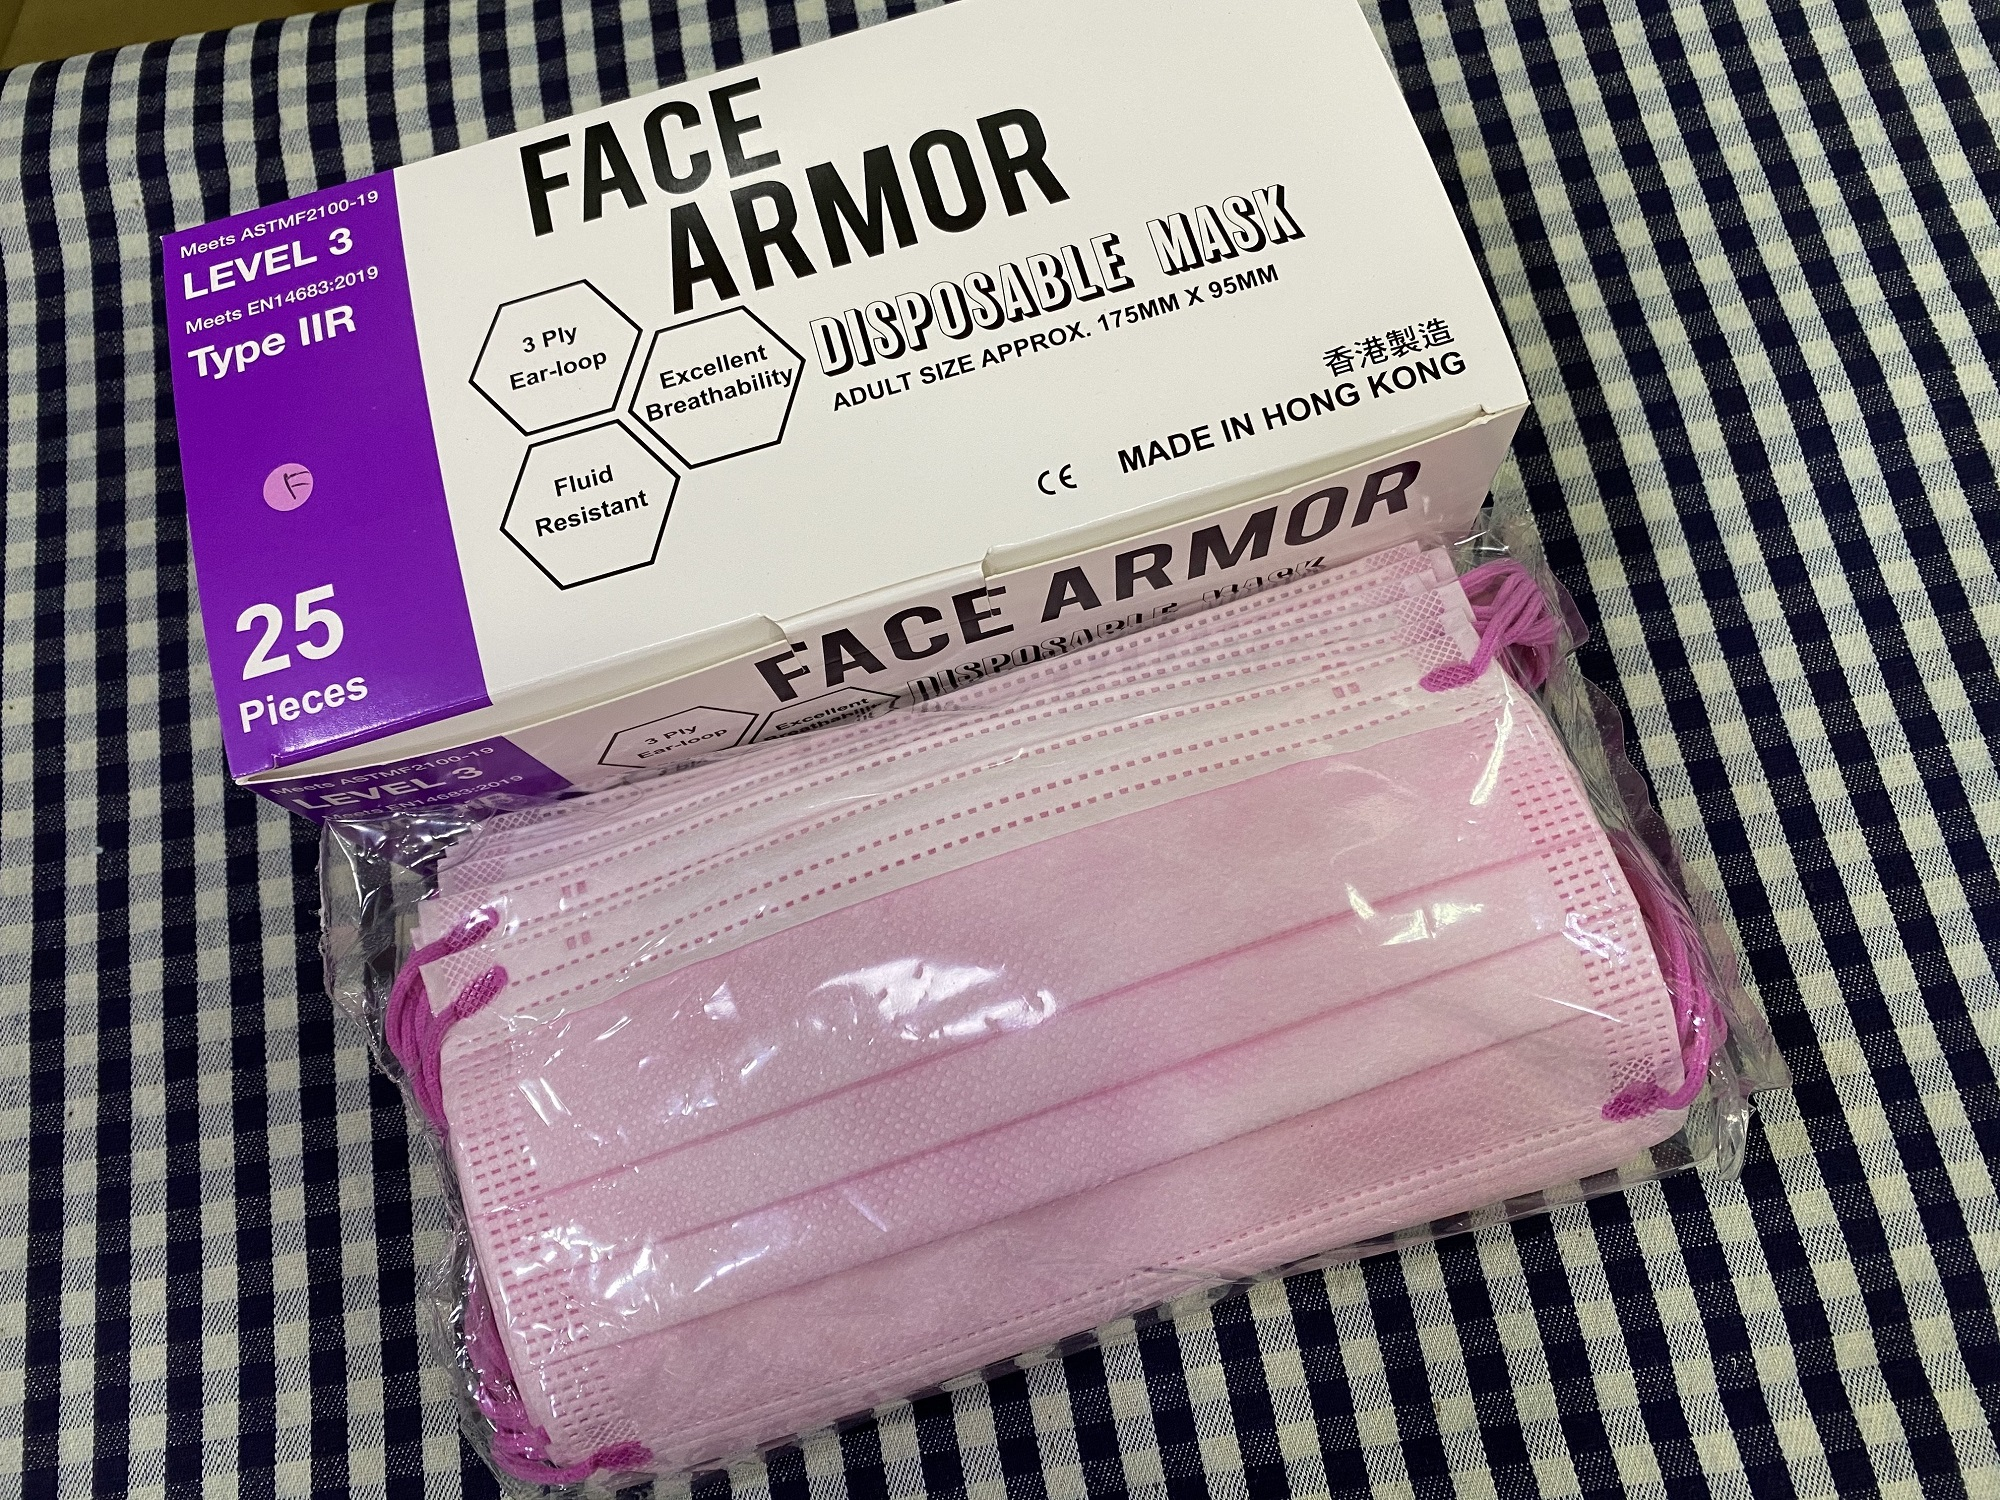 Face Armor Disposable Masks | ASTM LEVEL 3 | Made in Hong Kong| 25 PIECES | PINK W/ FUCHSIA EARLOOP